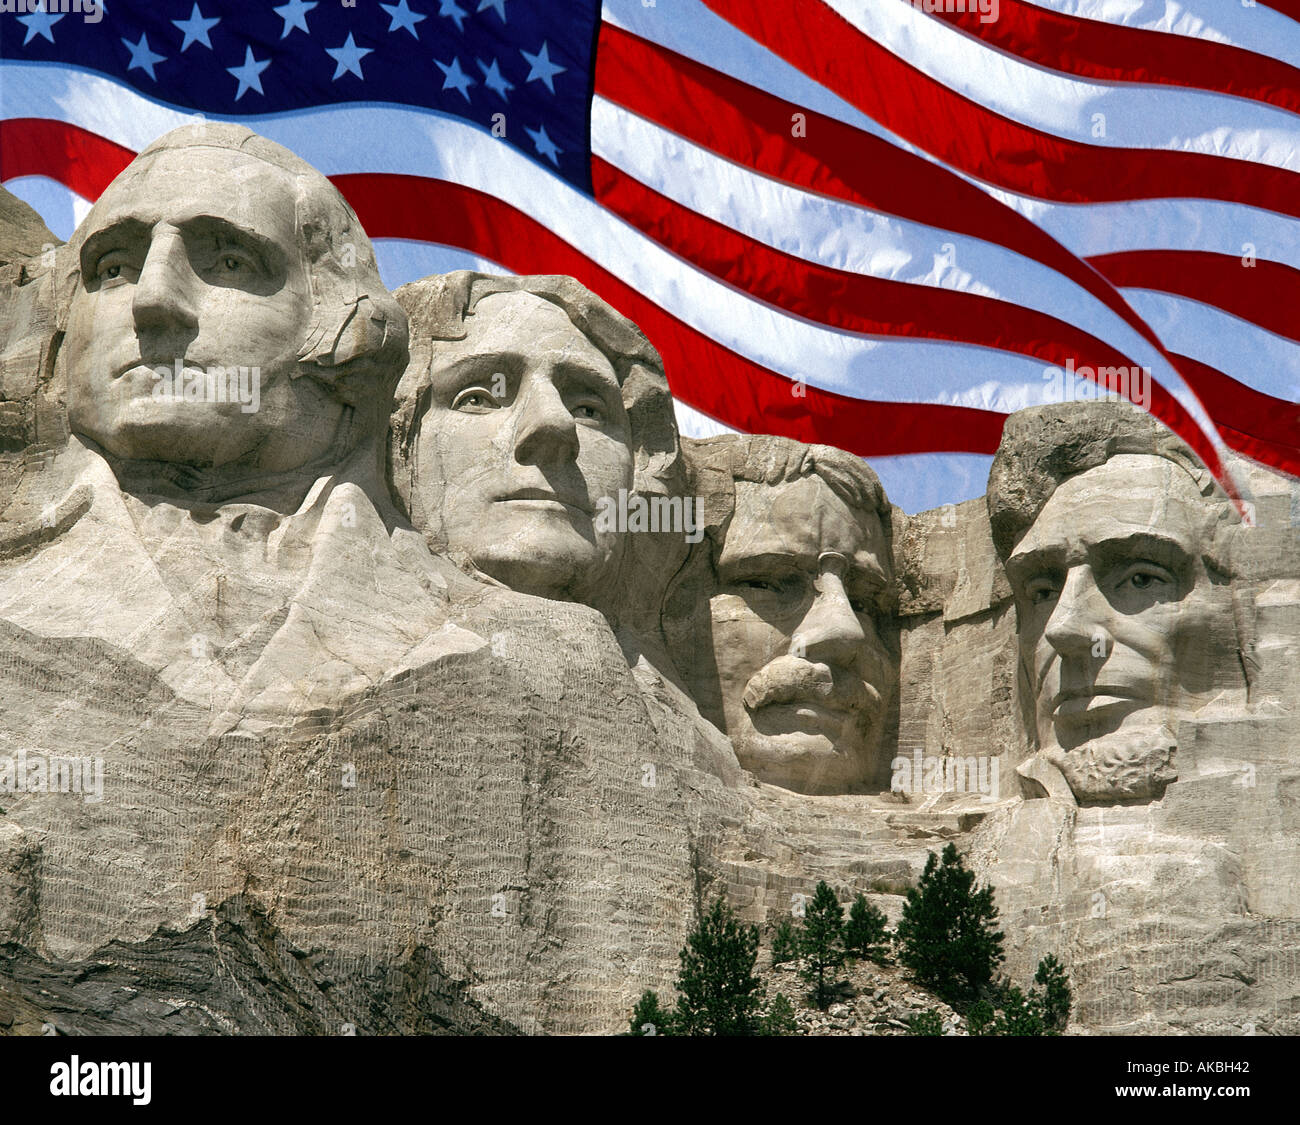 USA - DAKOTA DU SUD : Mont Rushmore National Monument Photo Stock